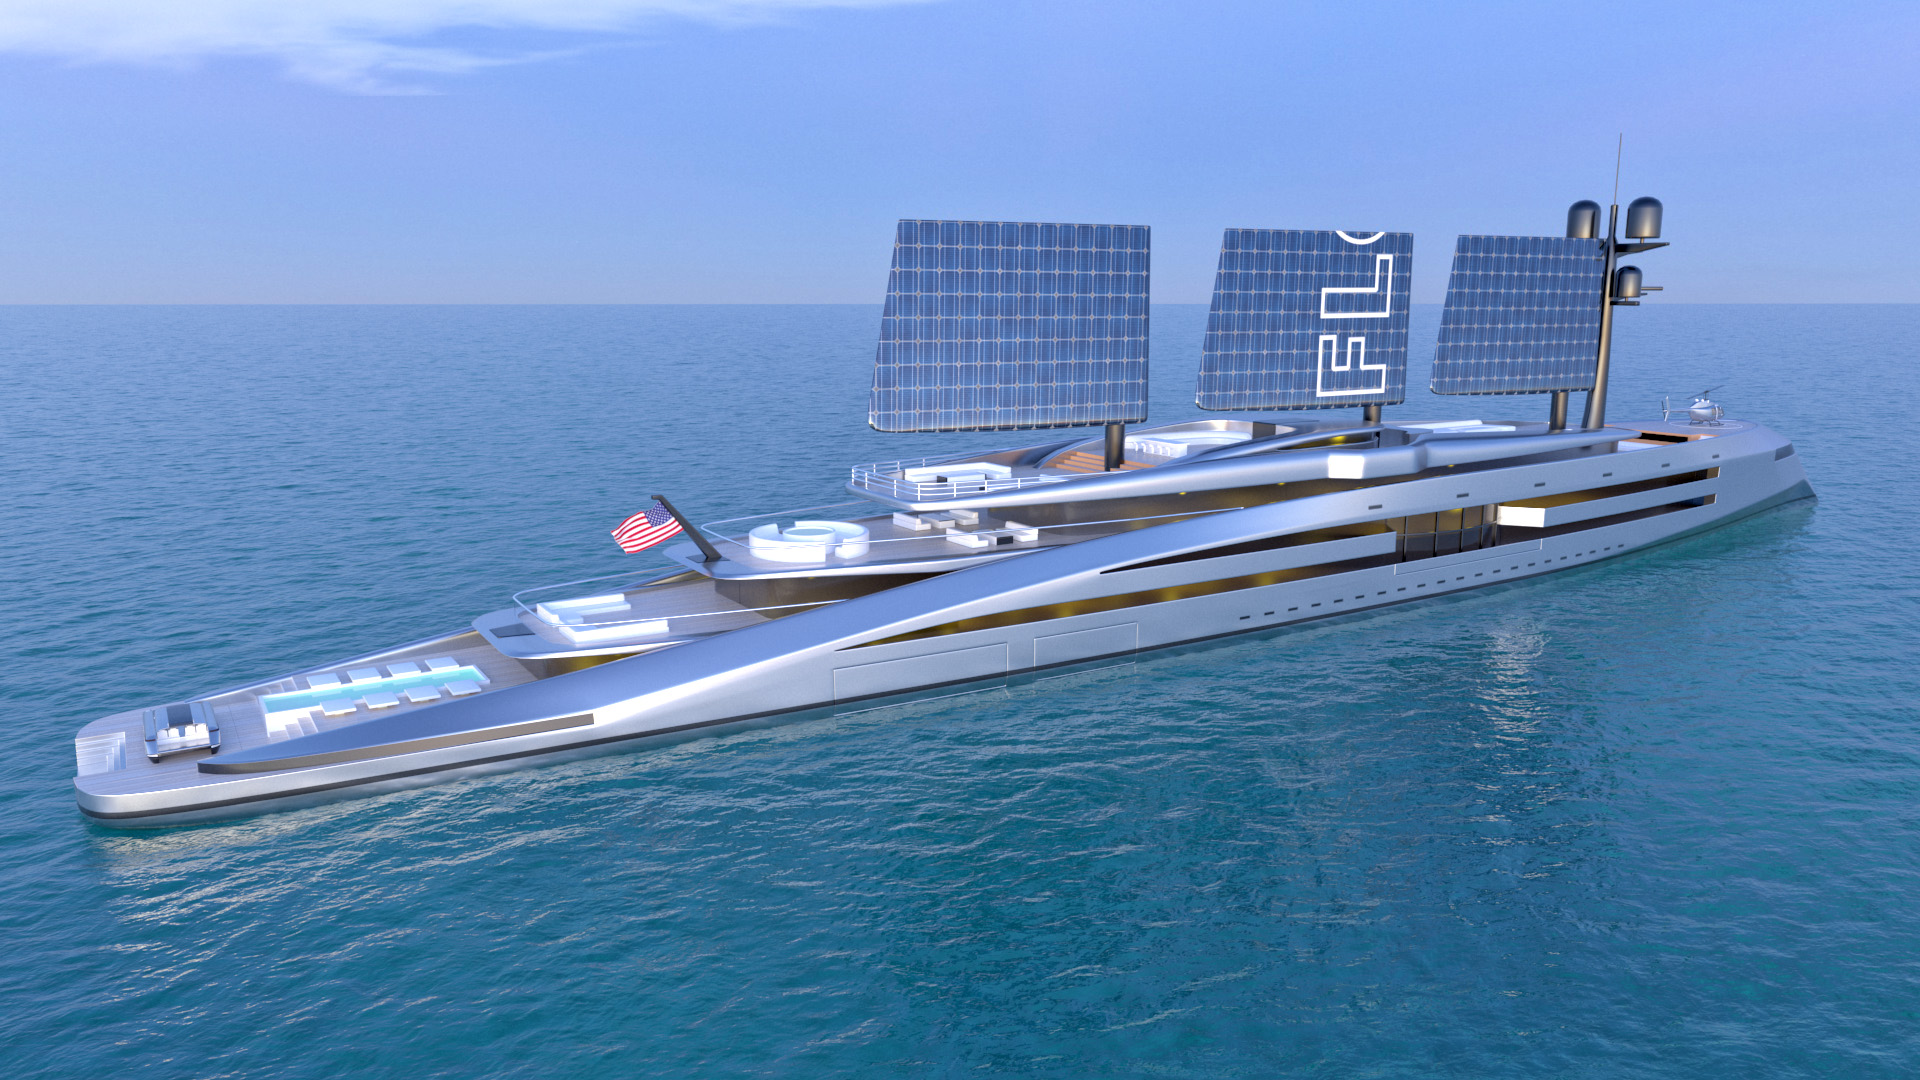 render of the Florida superyacht with wing sails collapsed